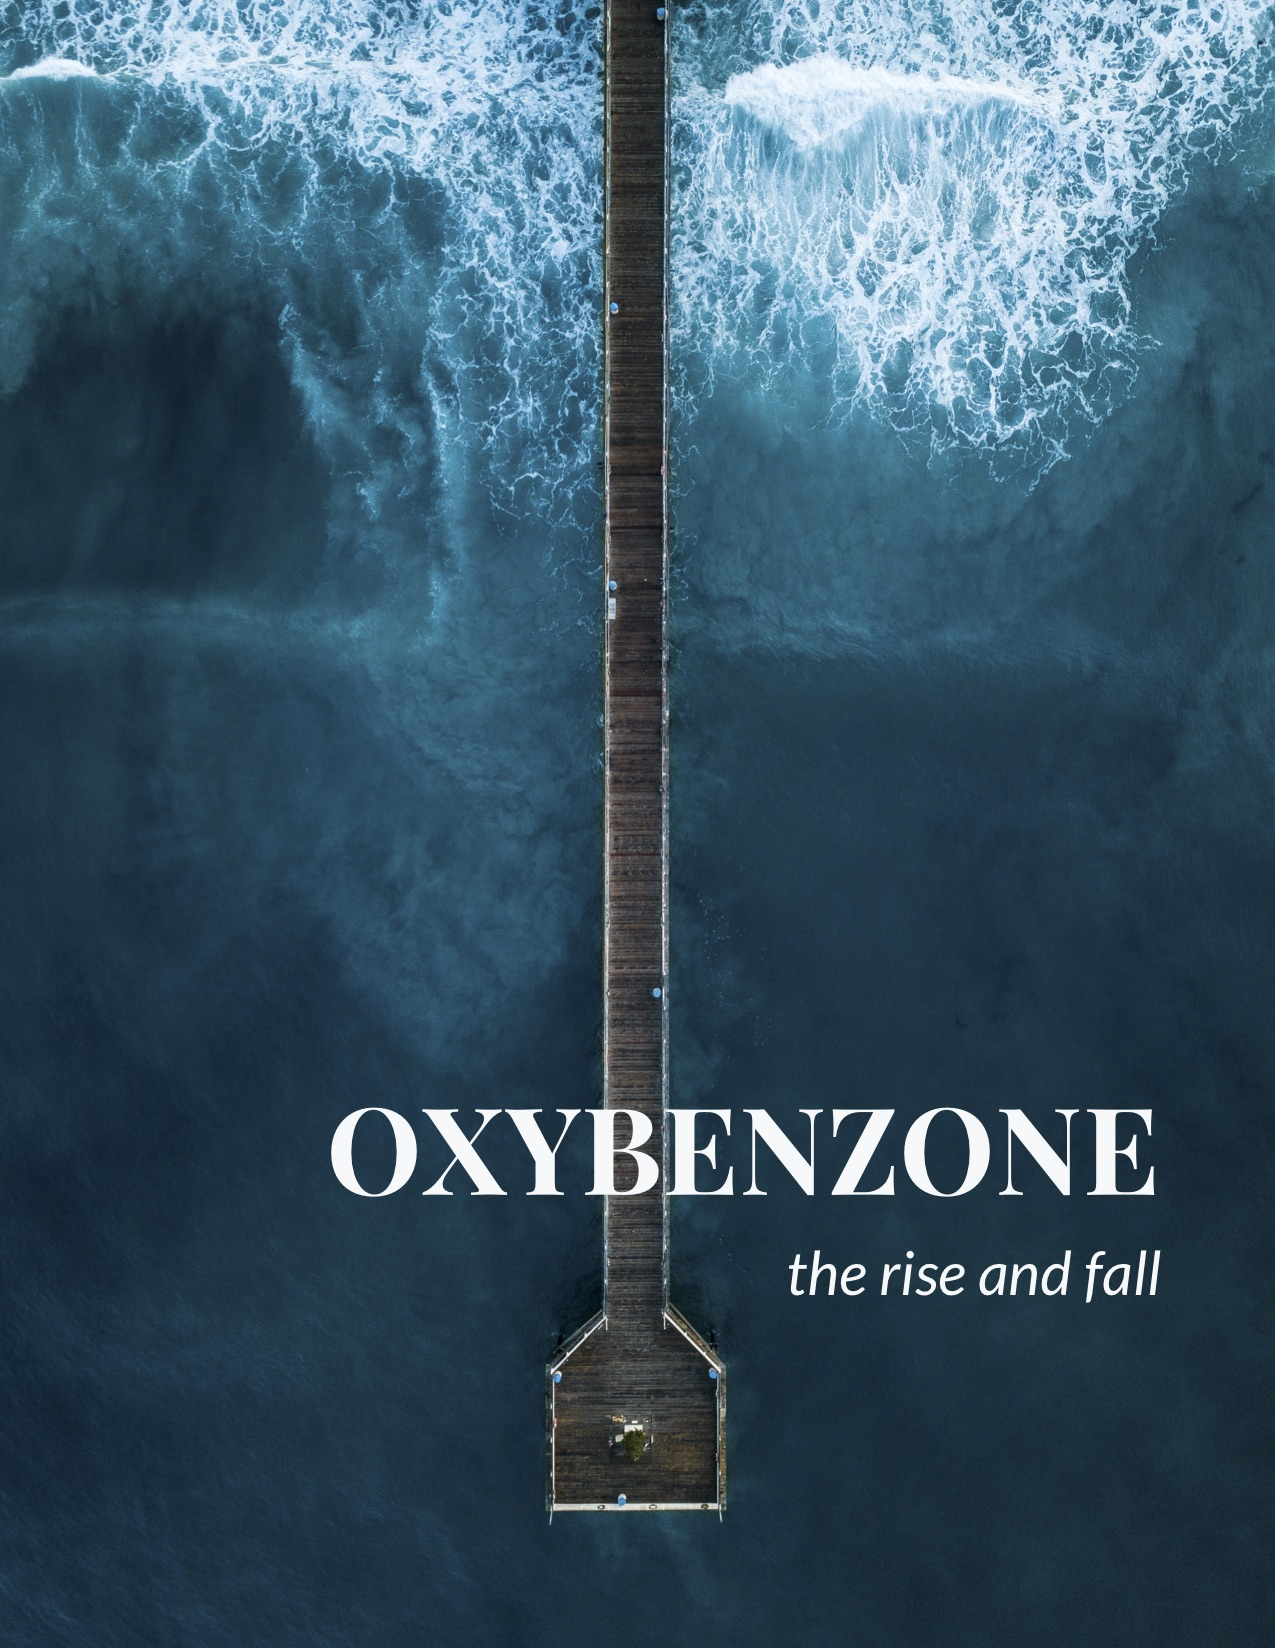 oxybenzone-the-rise-and-fall.jpg